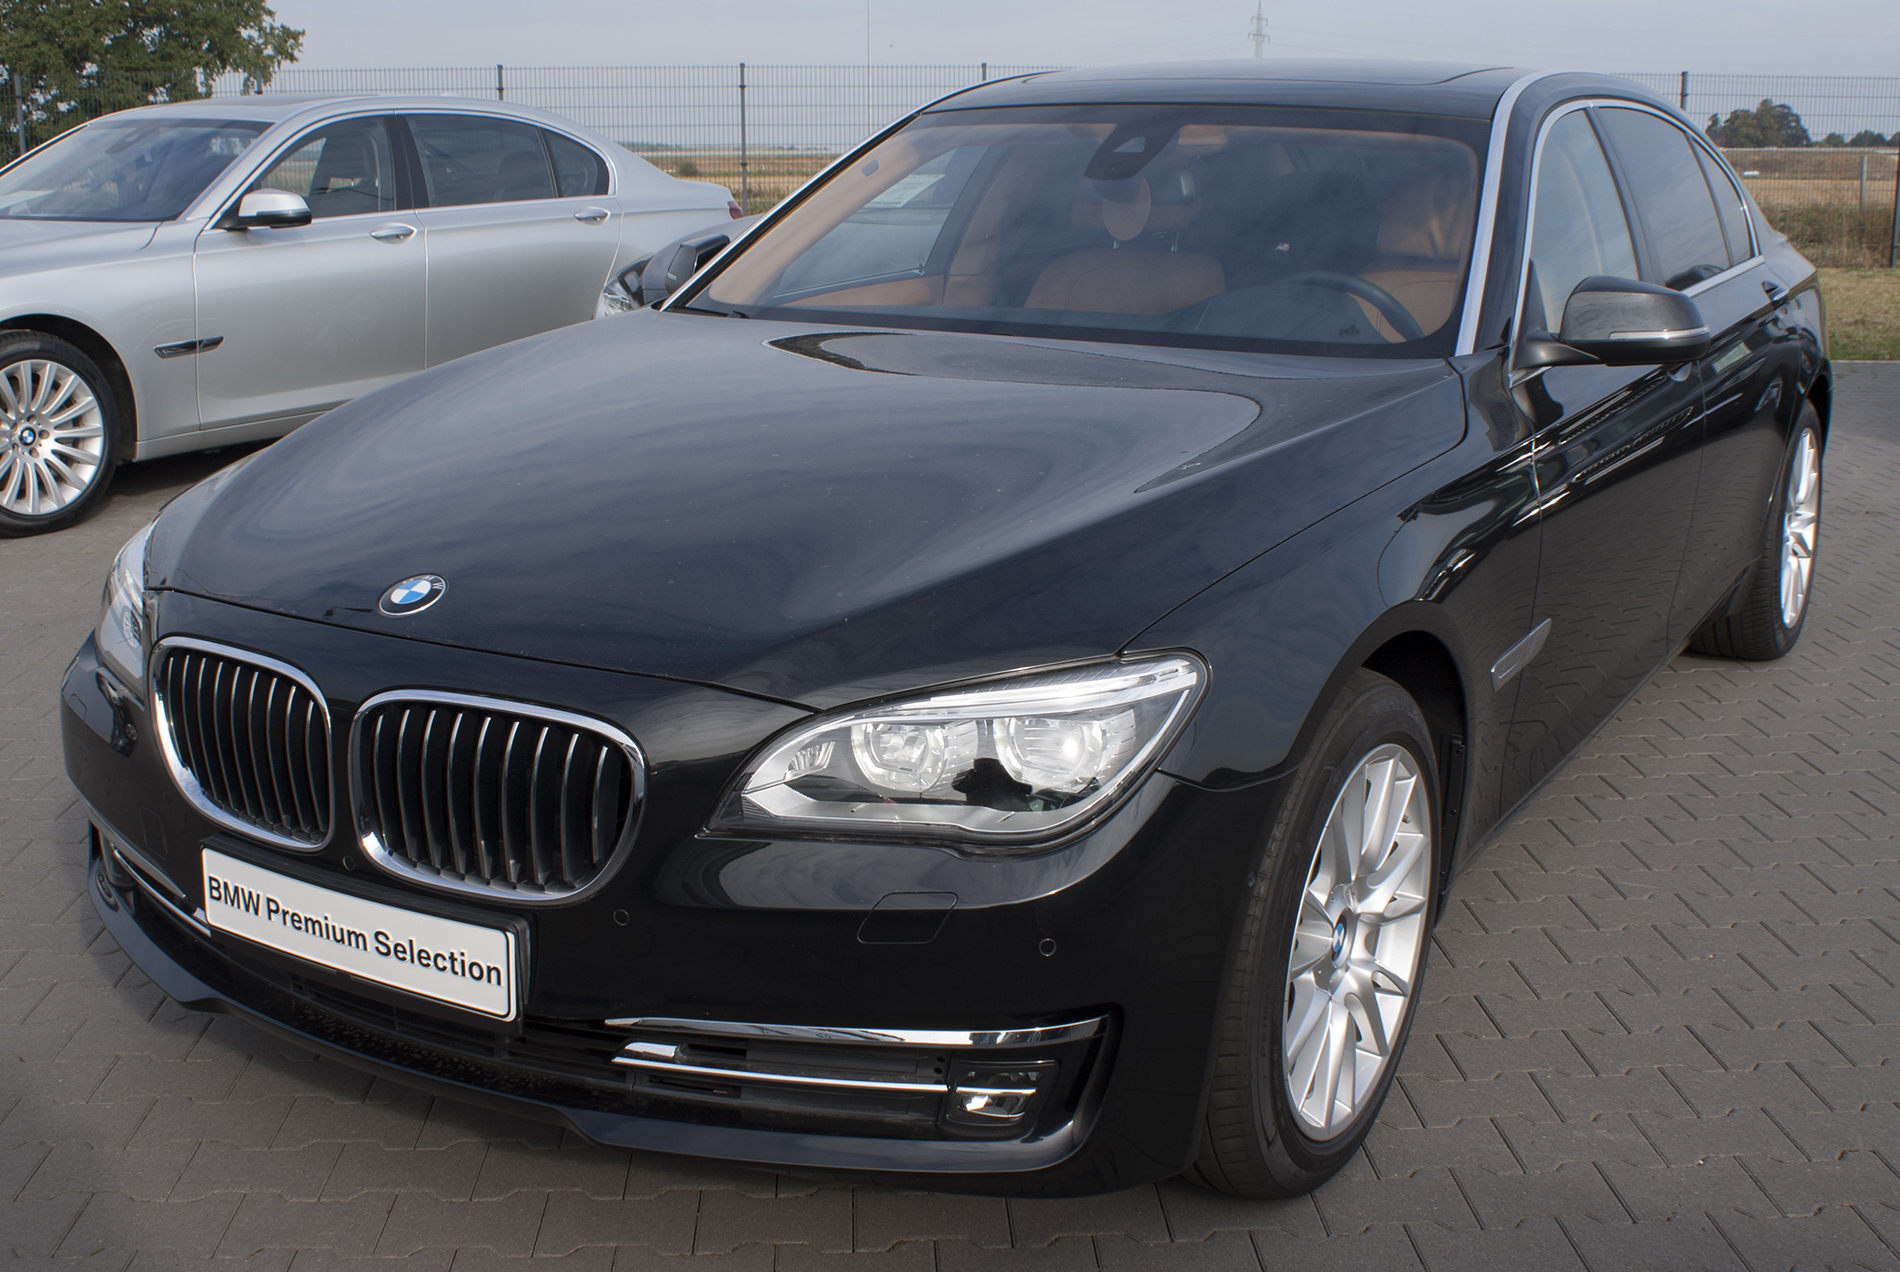 BMW 750Ld xDrive Edition Exclusive